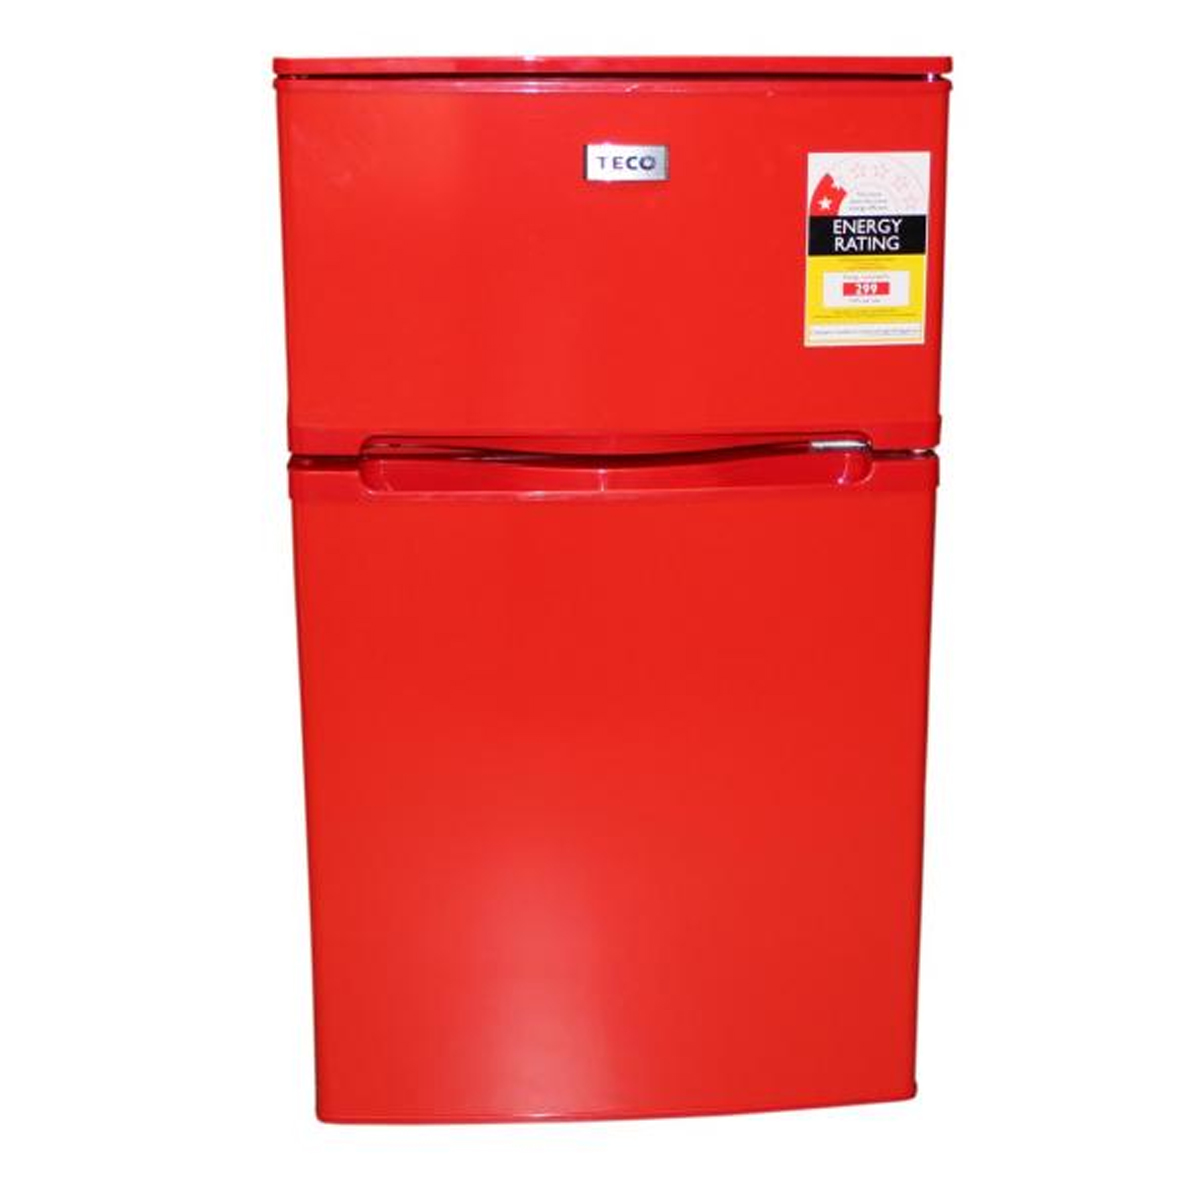 Teco TBF84RMTA 2 Door 84L Red Bar Fridge 133166